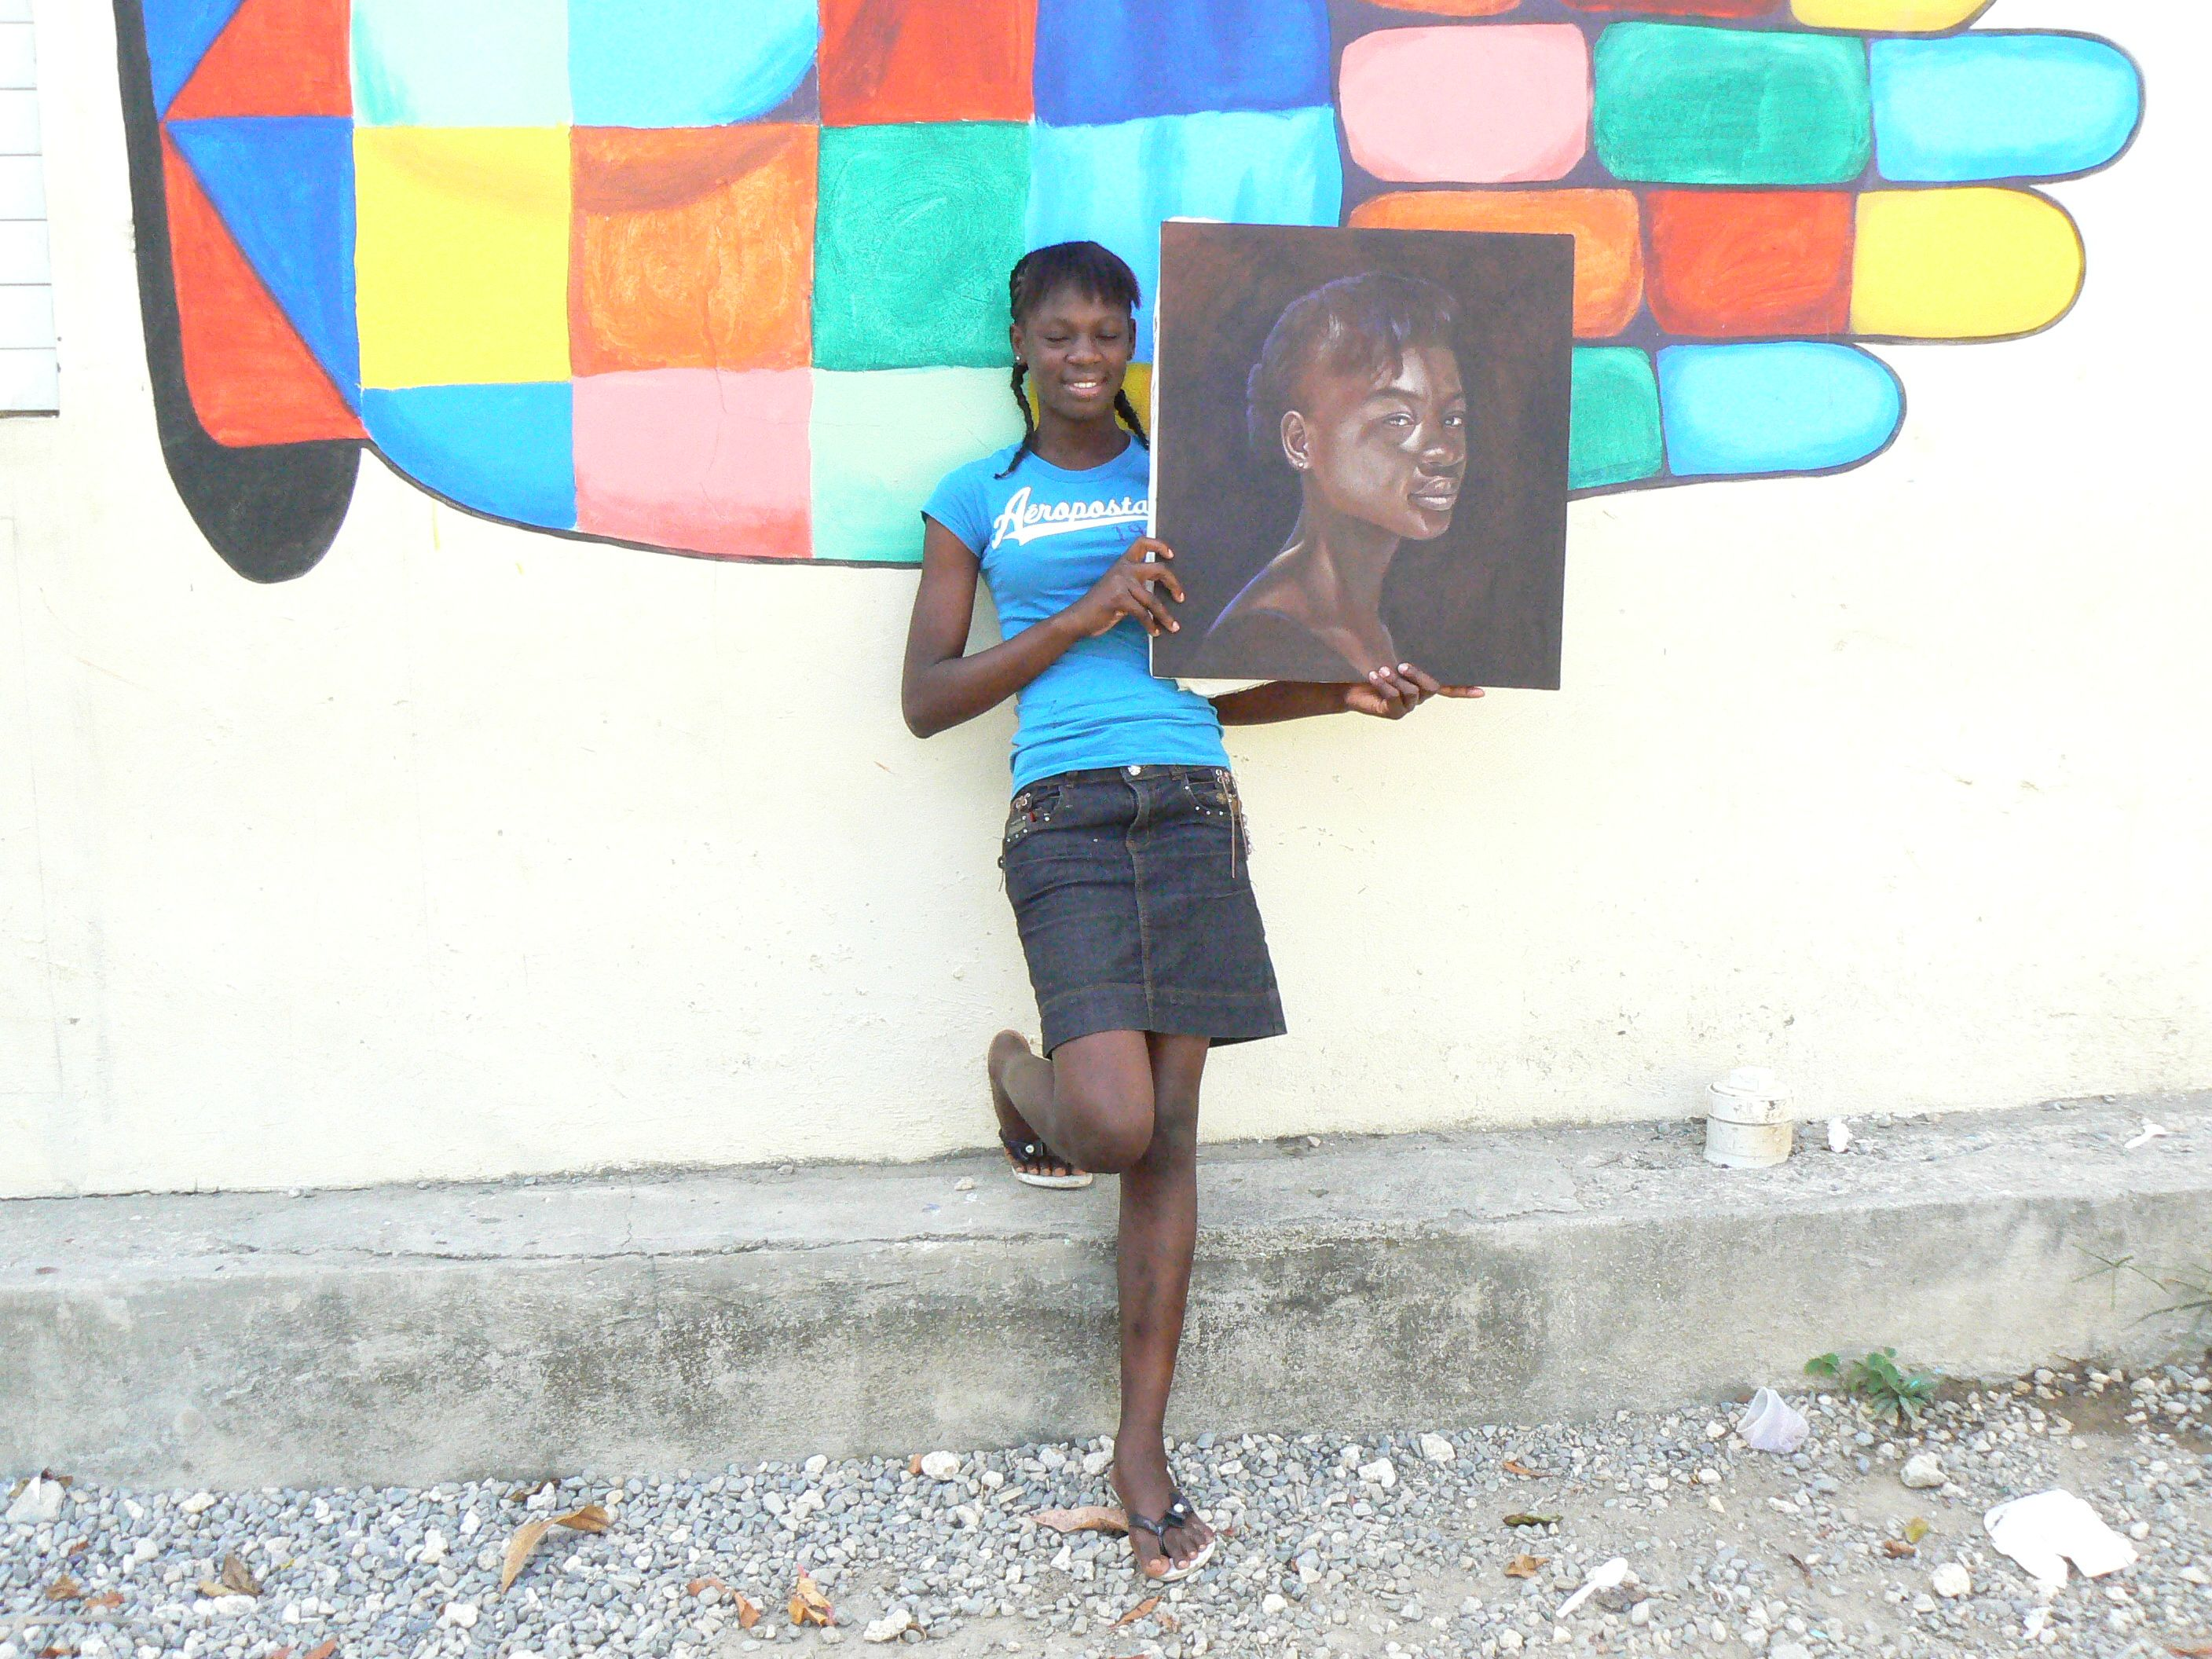 portrait of Dafne  .  Dafne works at the school in Cangrejo, has gotten her nursing degree and wants to continue studying to become a doctor.